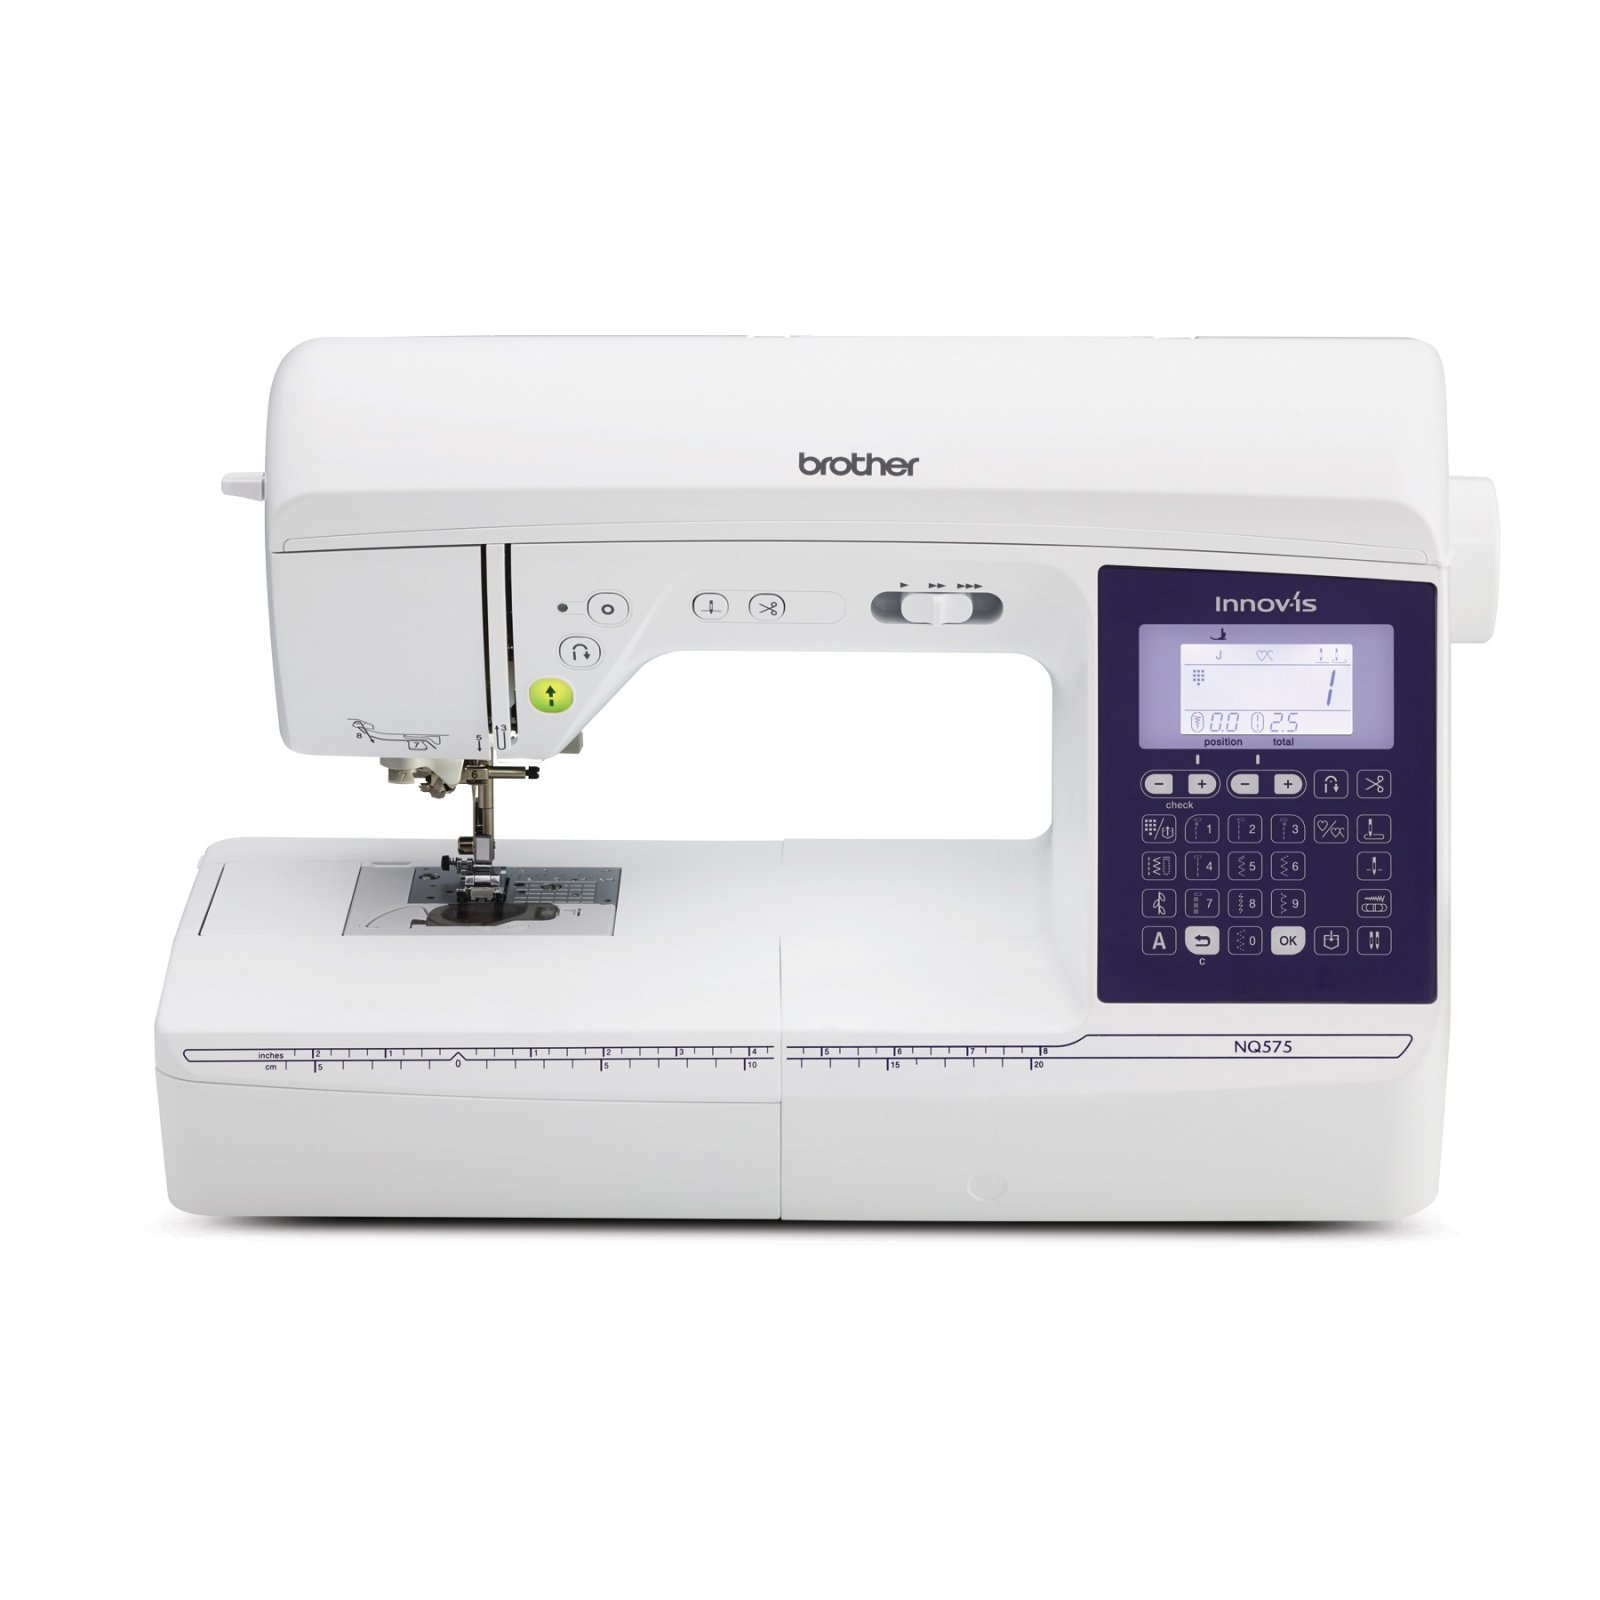 Brother Trendsetter 2 NQ575 Sewing Machine